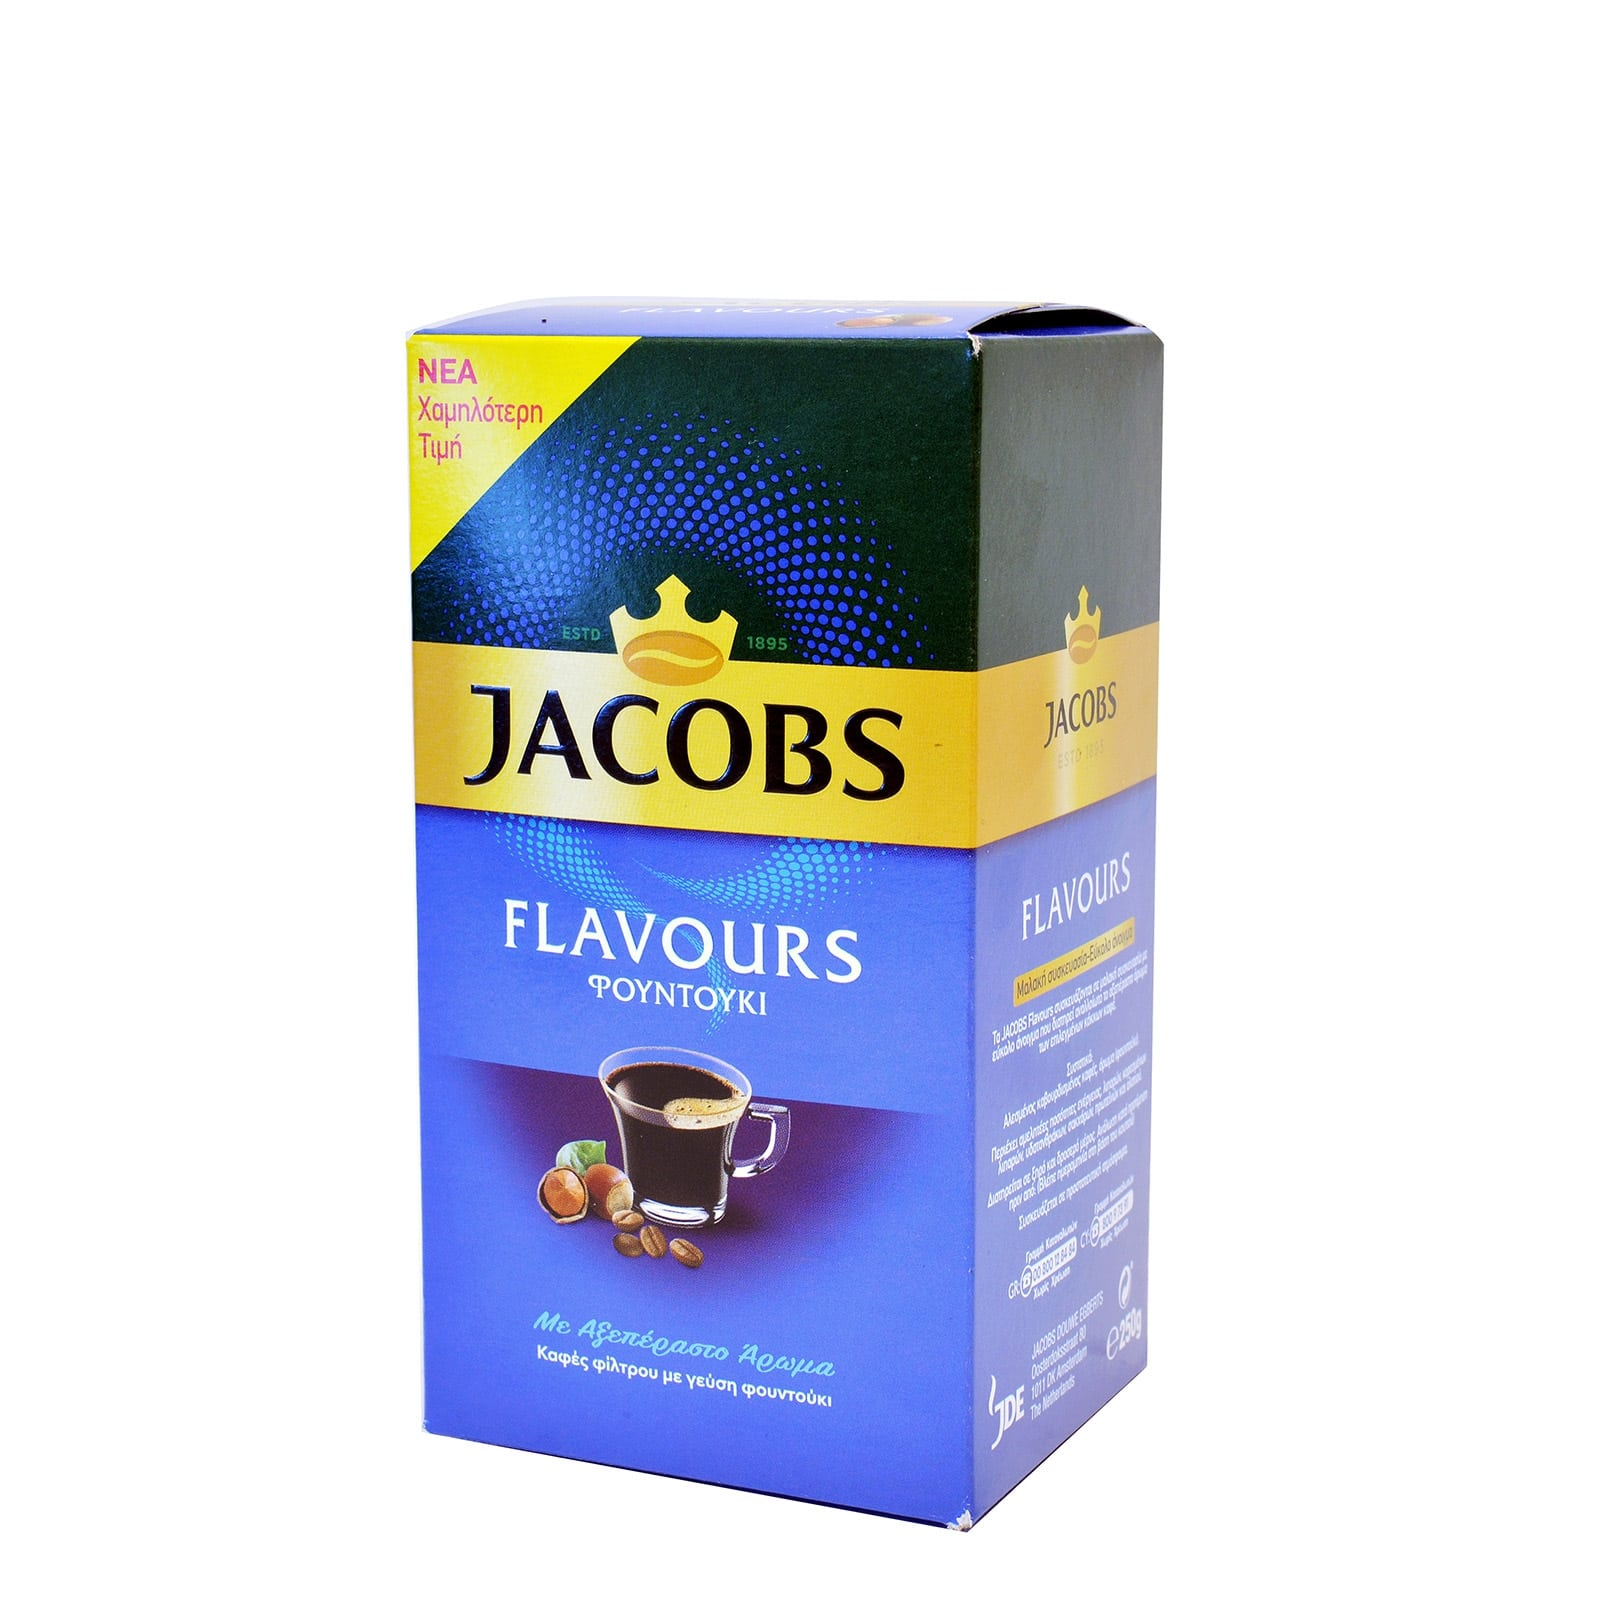 f4a8384c5c Jacobs Flavours Filter Coffee Hazelnut   Καφές Φίλτρου Φουντούκι 250g